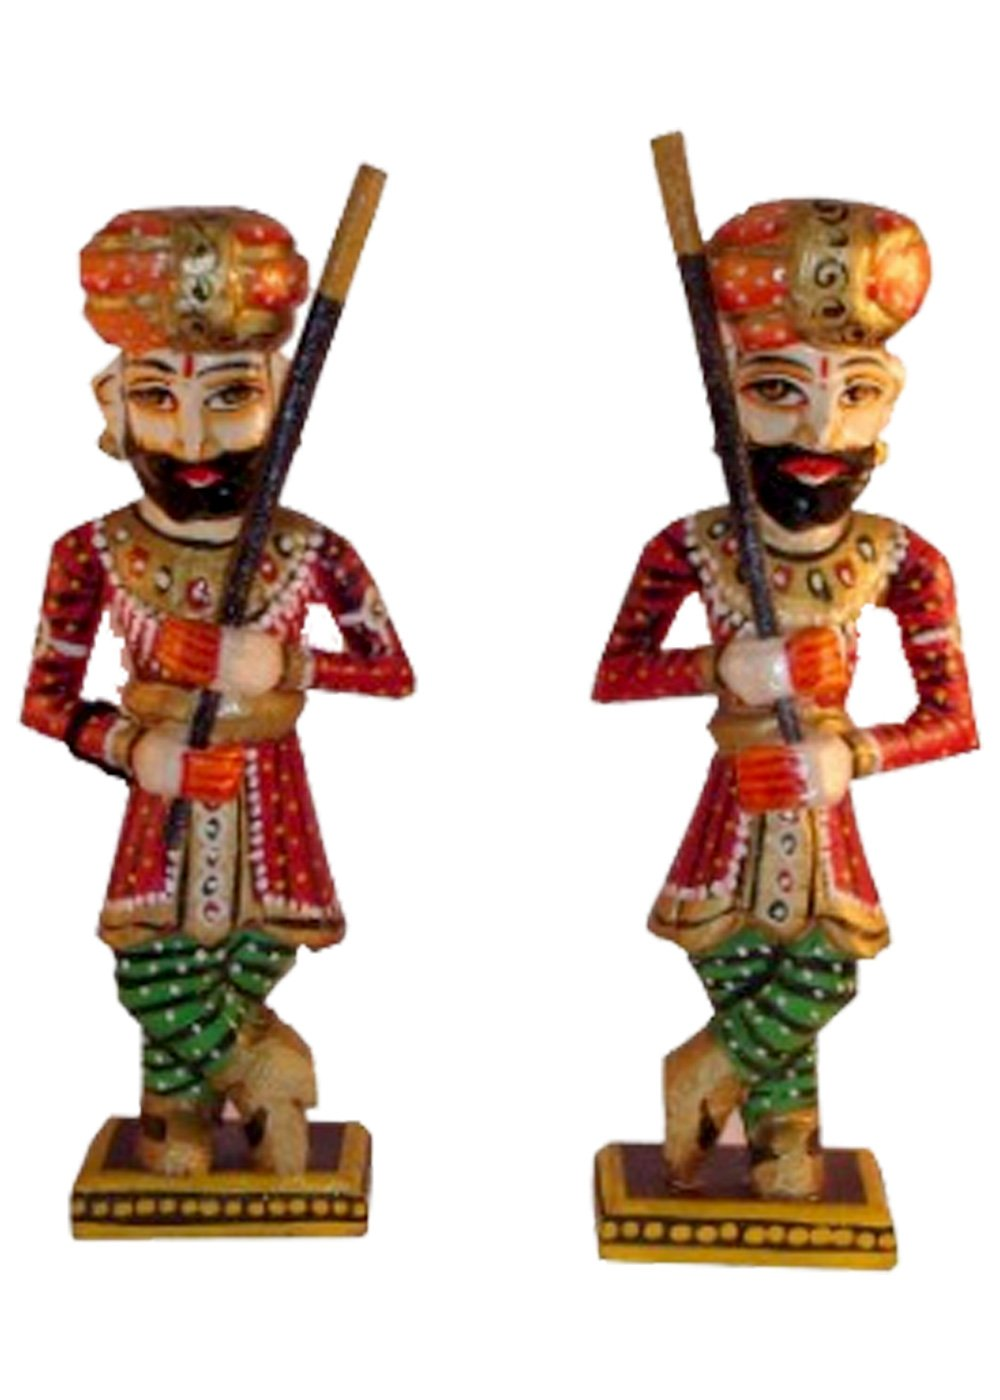 Handmade Wooden Guards Figurine Set